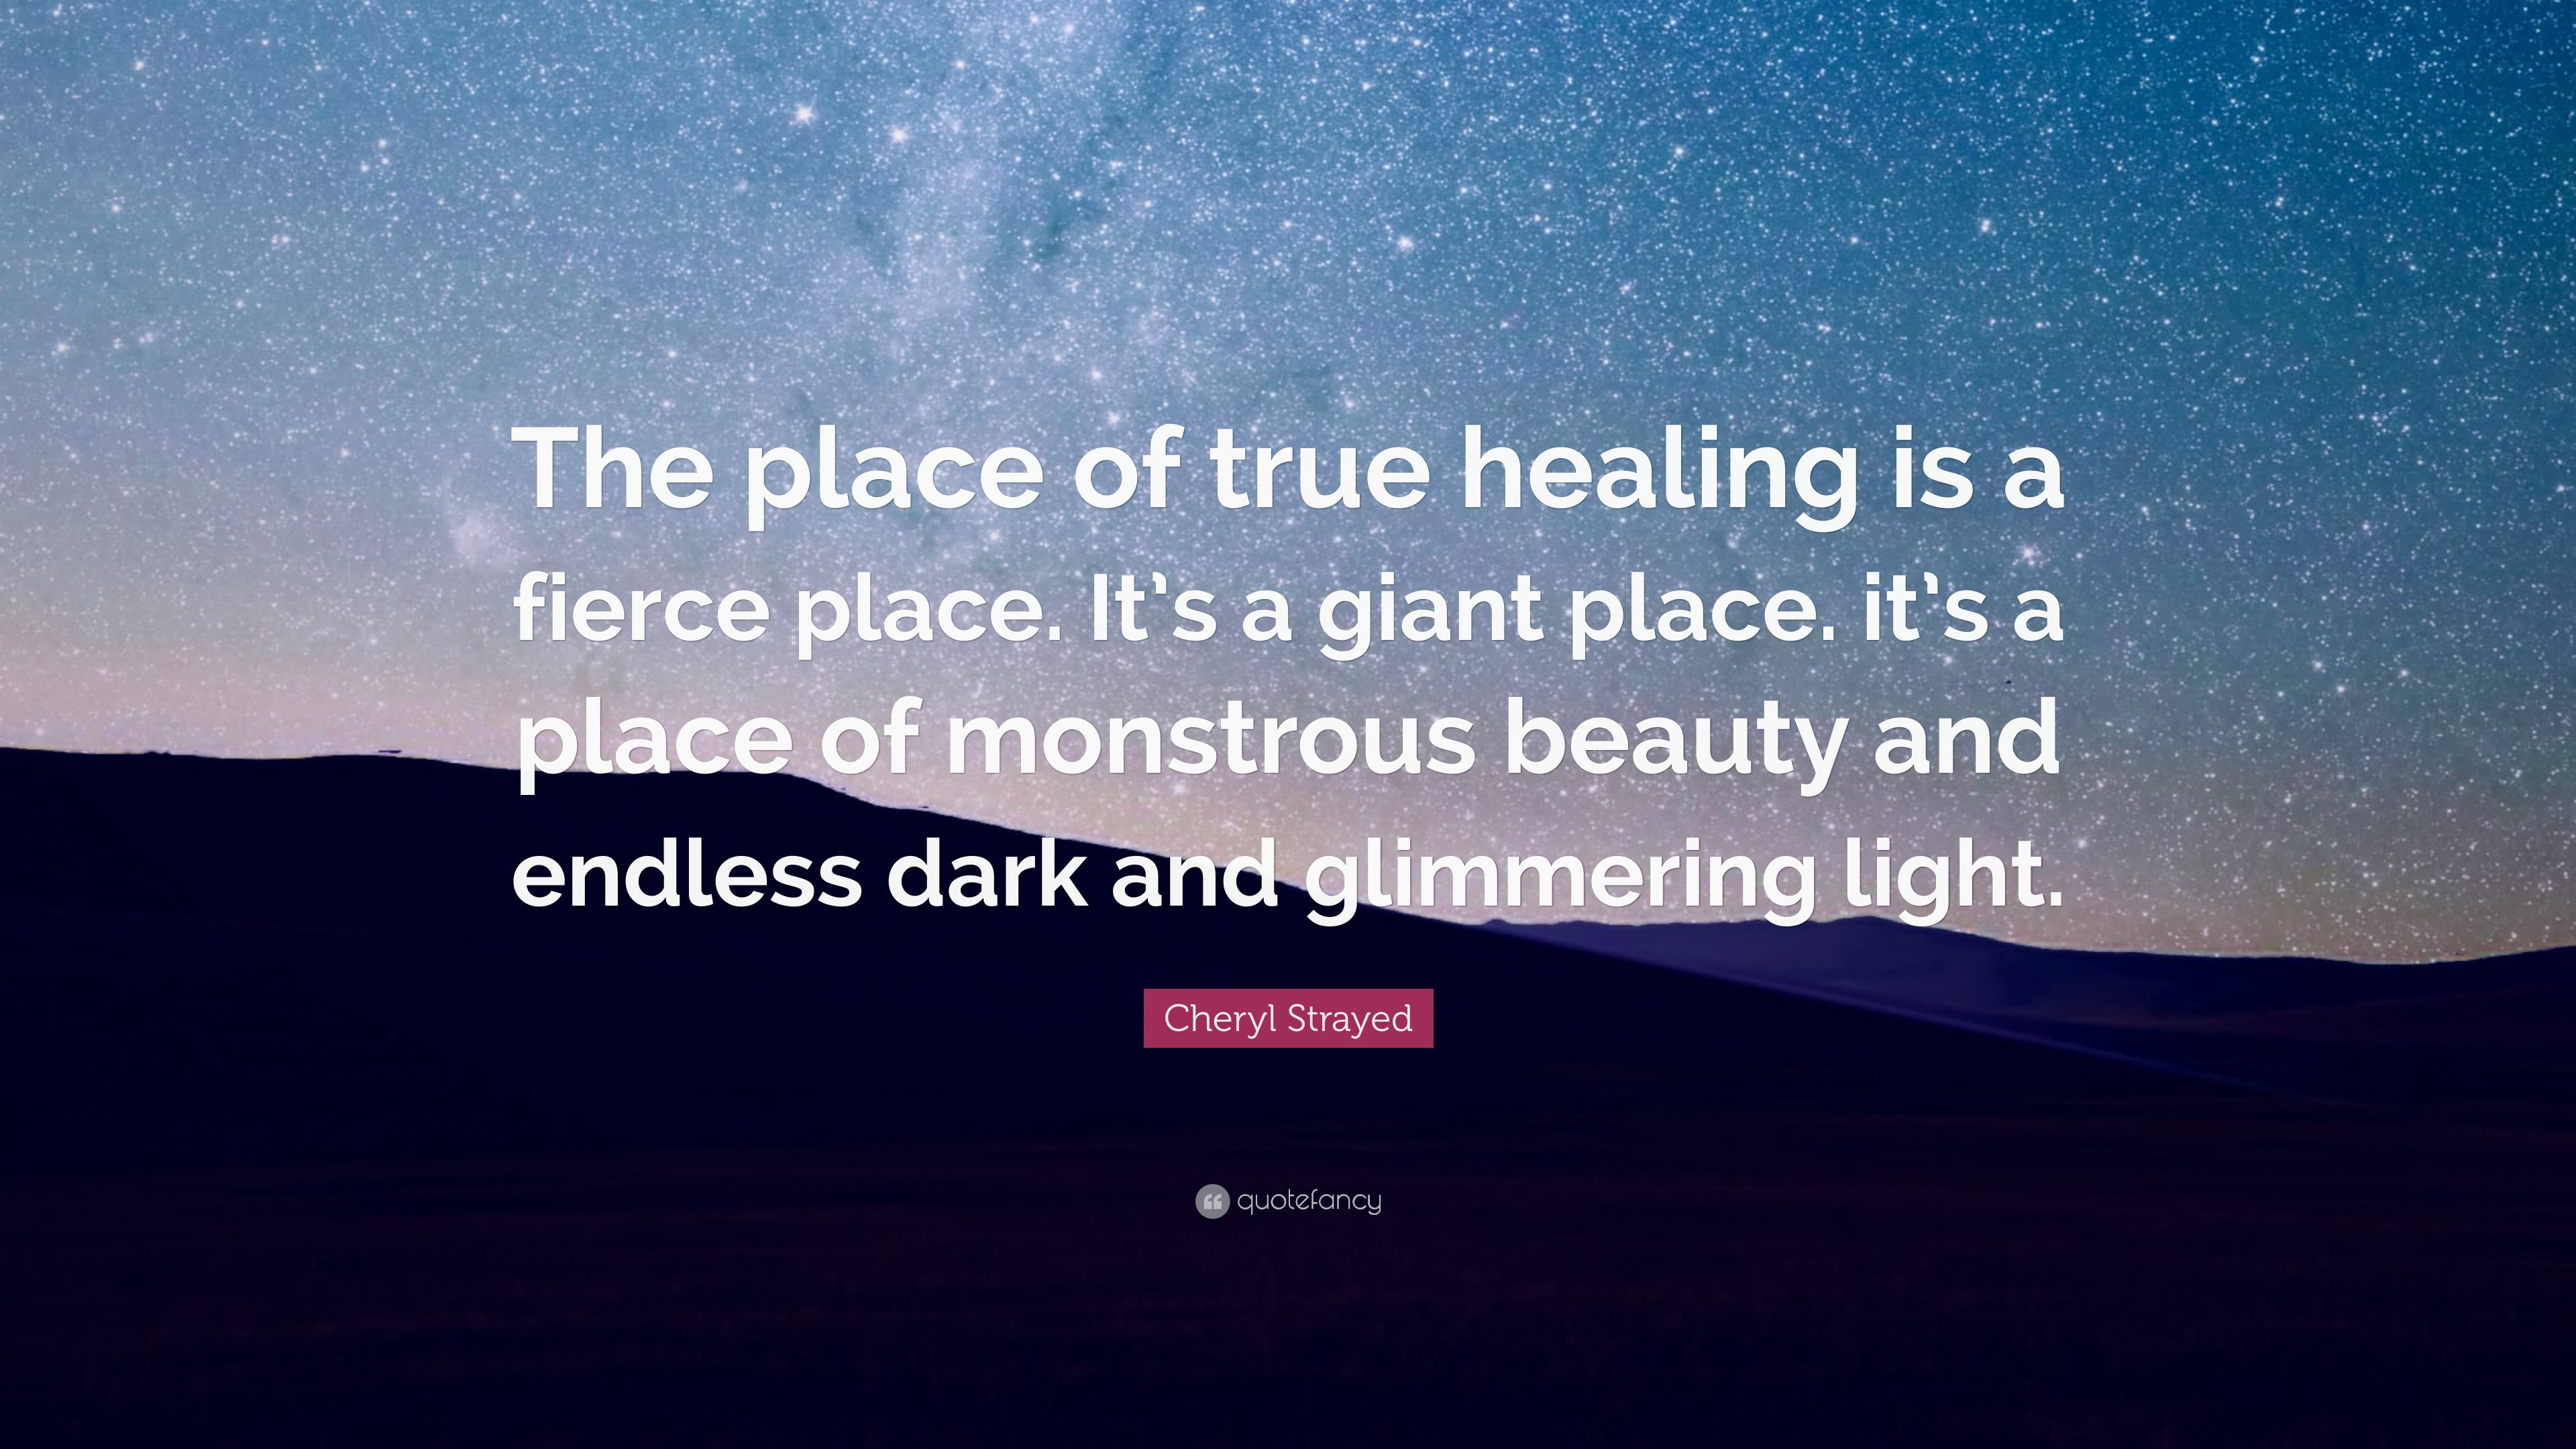 Healing Quotes Brilliant Healing Quotes 40 Wallpapers  Quotefancy